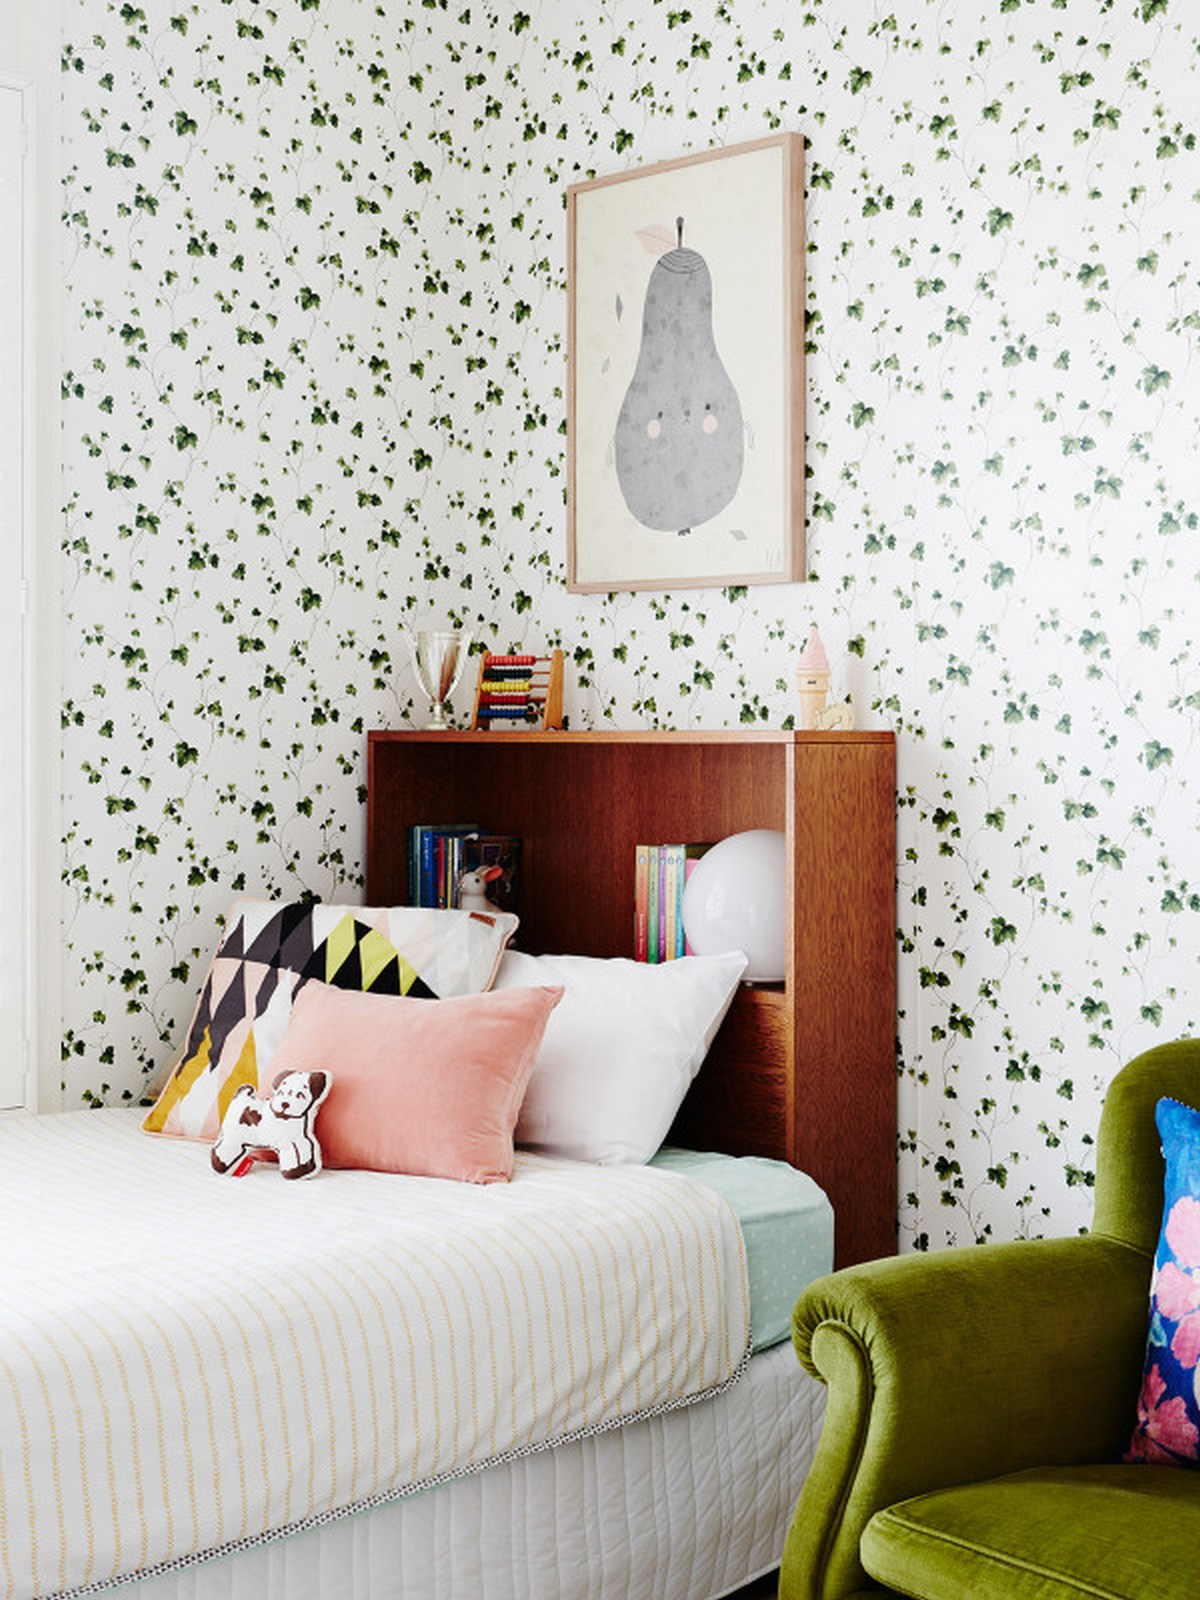 11-bedroom-design-nordic-style-contemporary-with-high-case-headboard-with-storage-and-white-pink-pillow-and-wall-decorated